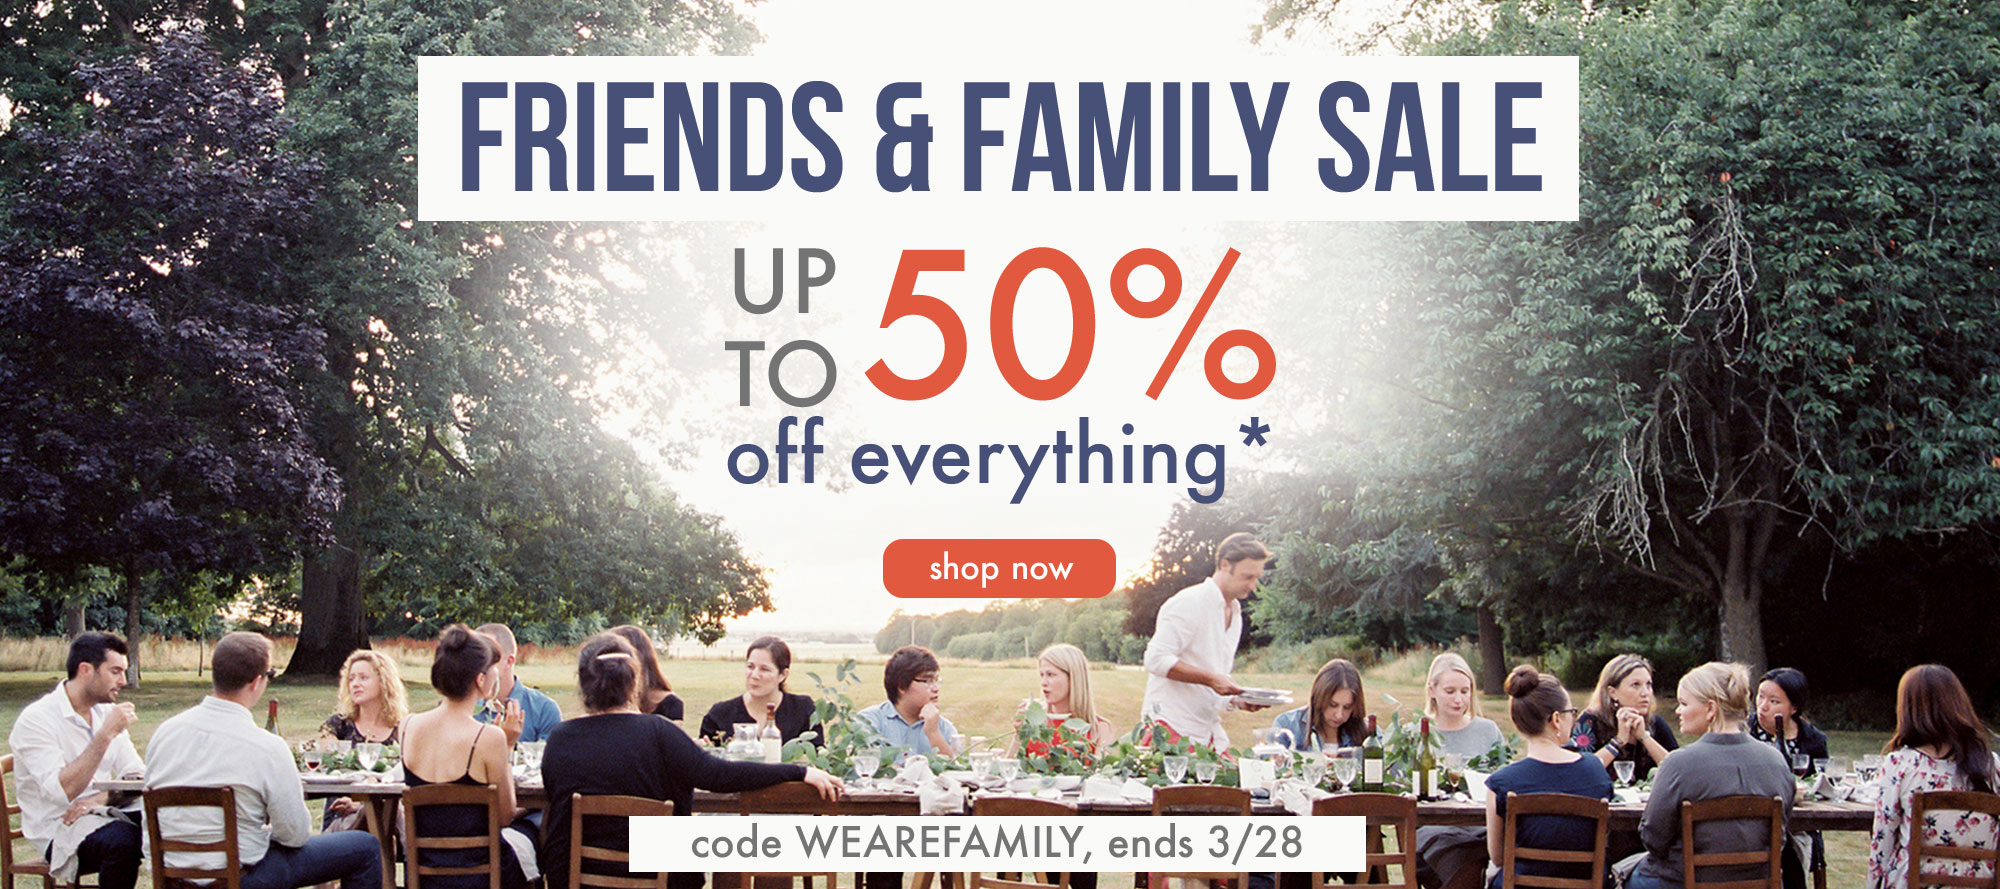 friends and family sale, take up to 50% off everything*